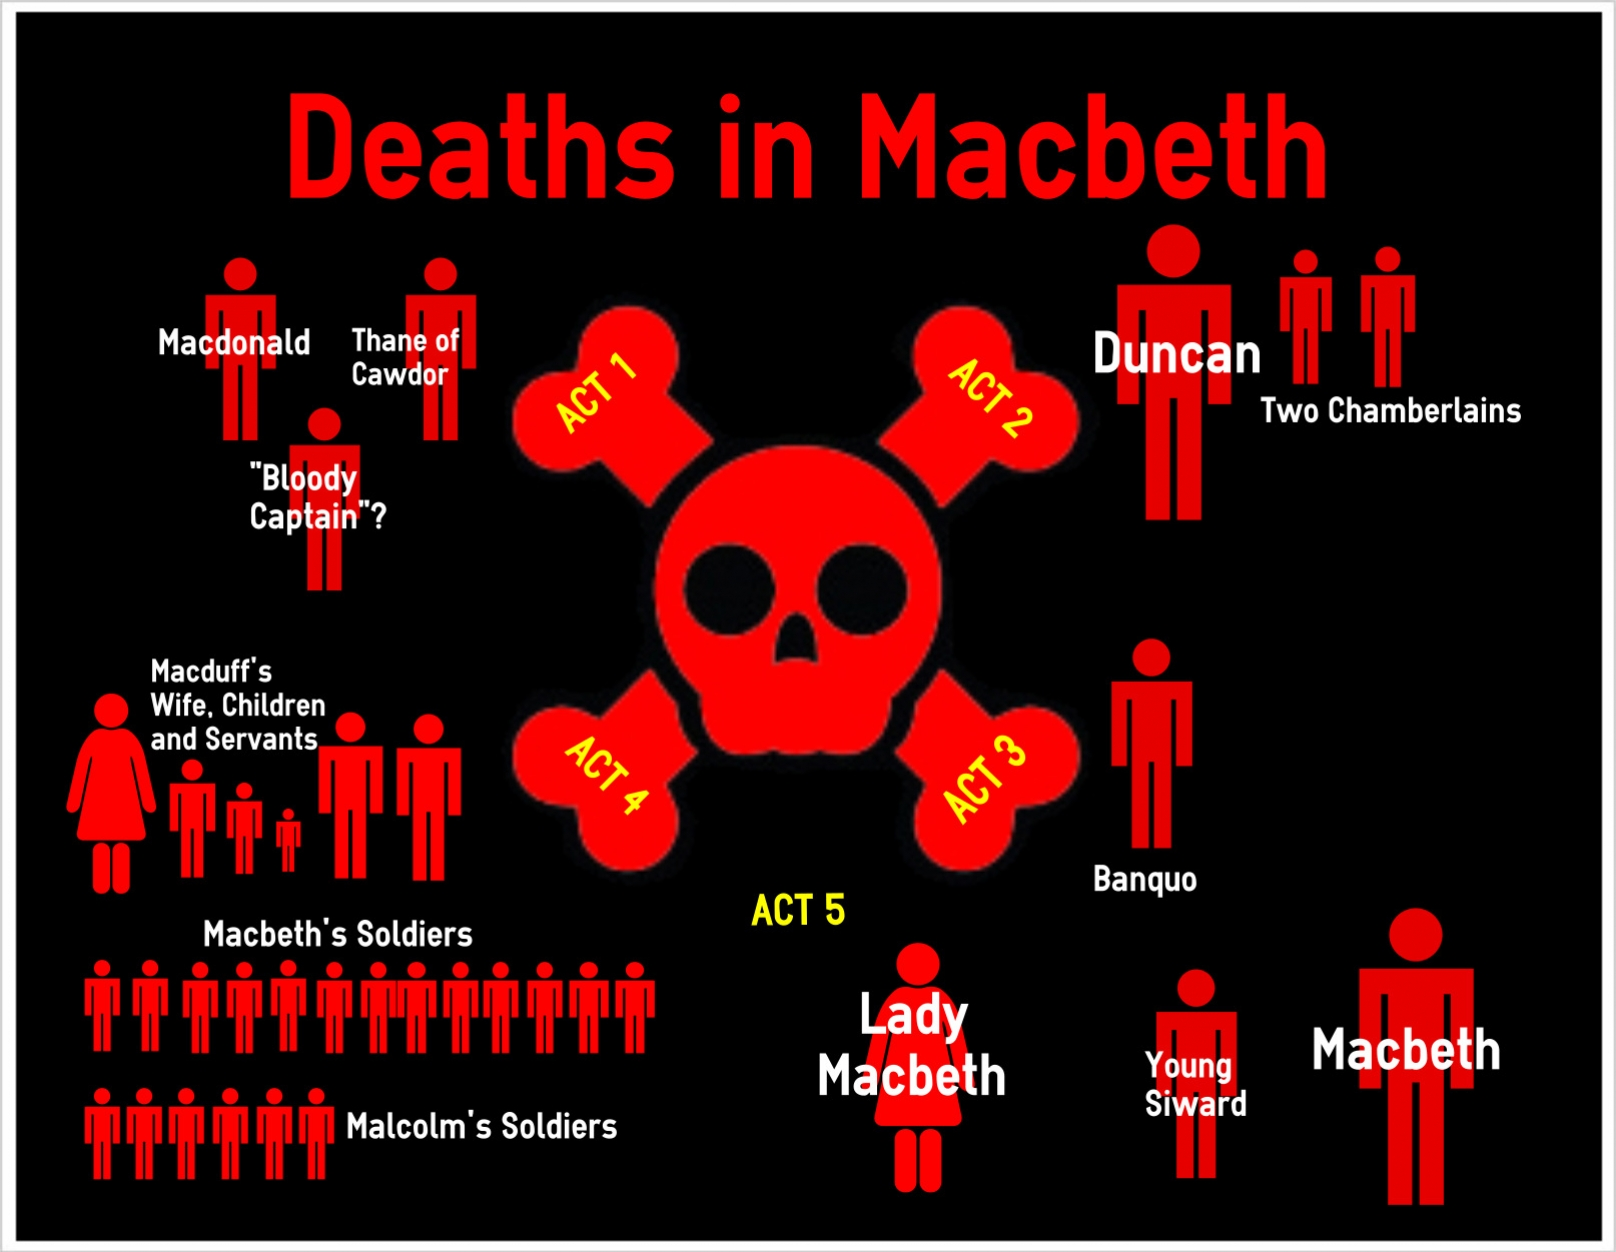 help on macbeth coursework A (slightly long) coursework help video, to use if you're struggling with the literature coursework (comparison of 2 novels) please watch this and have a go at the work before saying you're stuck.